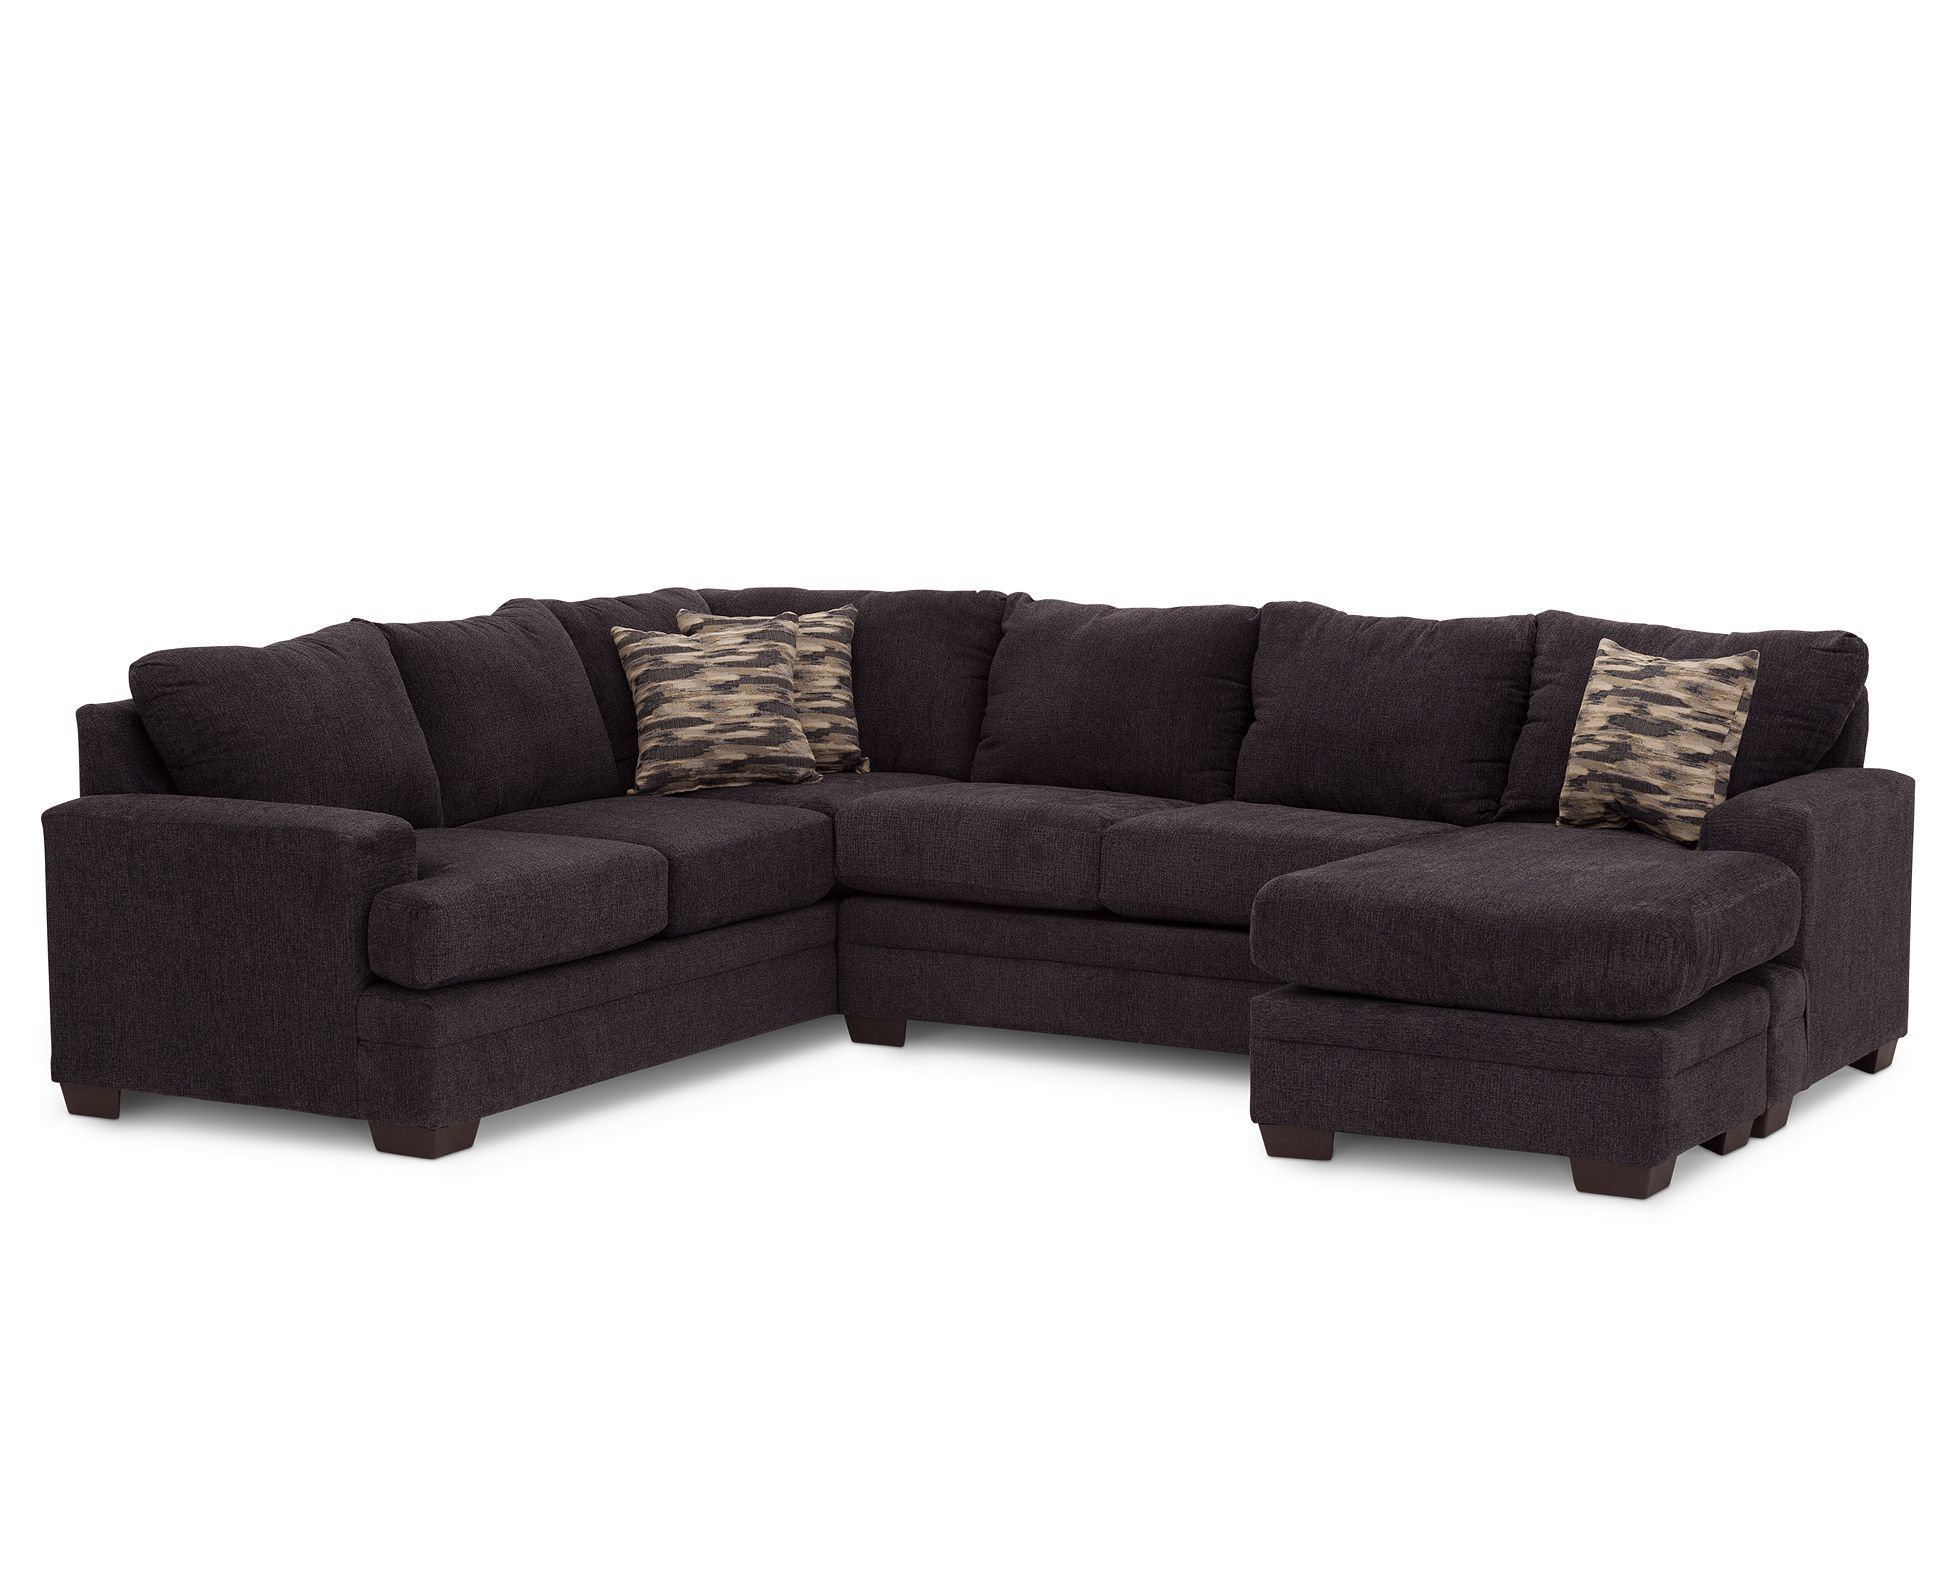 Best Perth 3 Pc Sectional Furniture Rustic Living Room 400 x 300